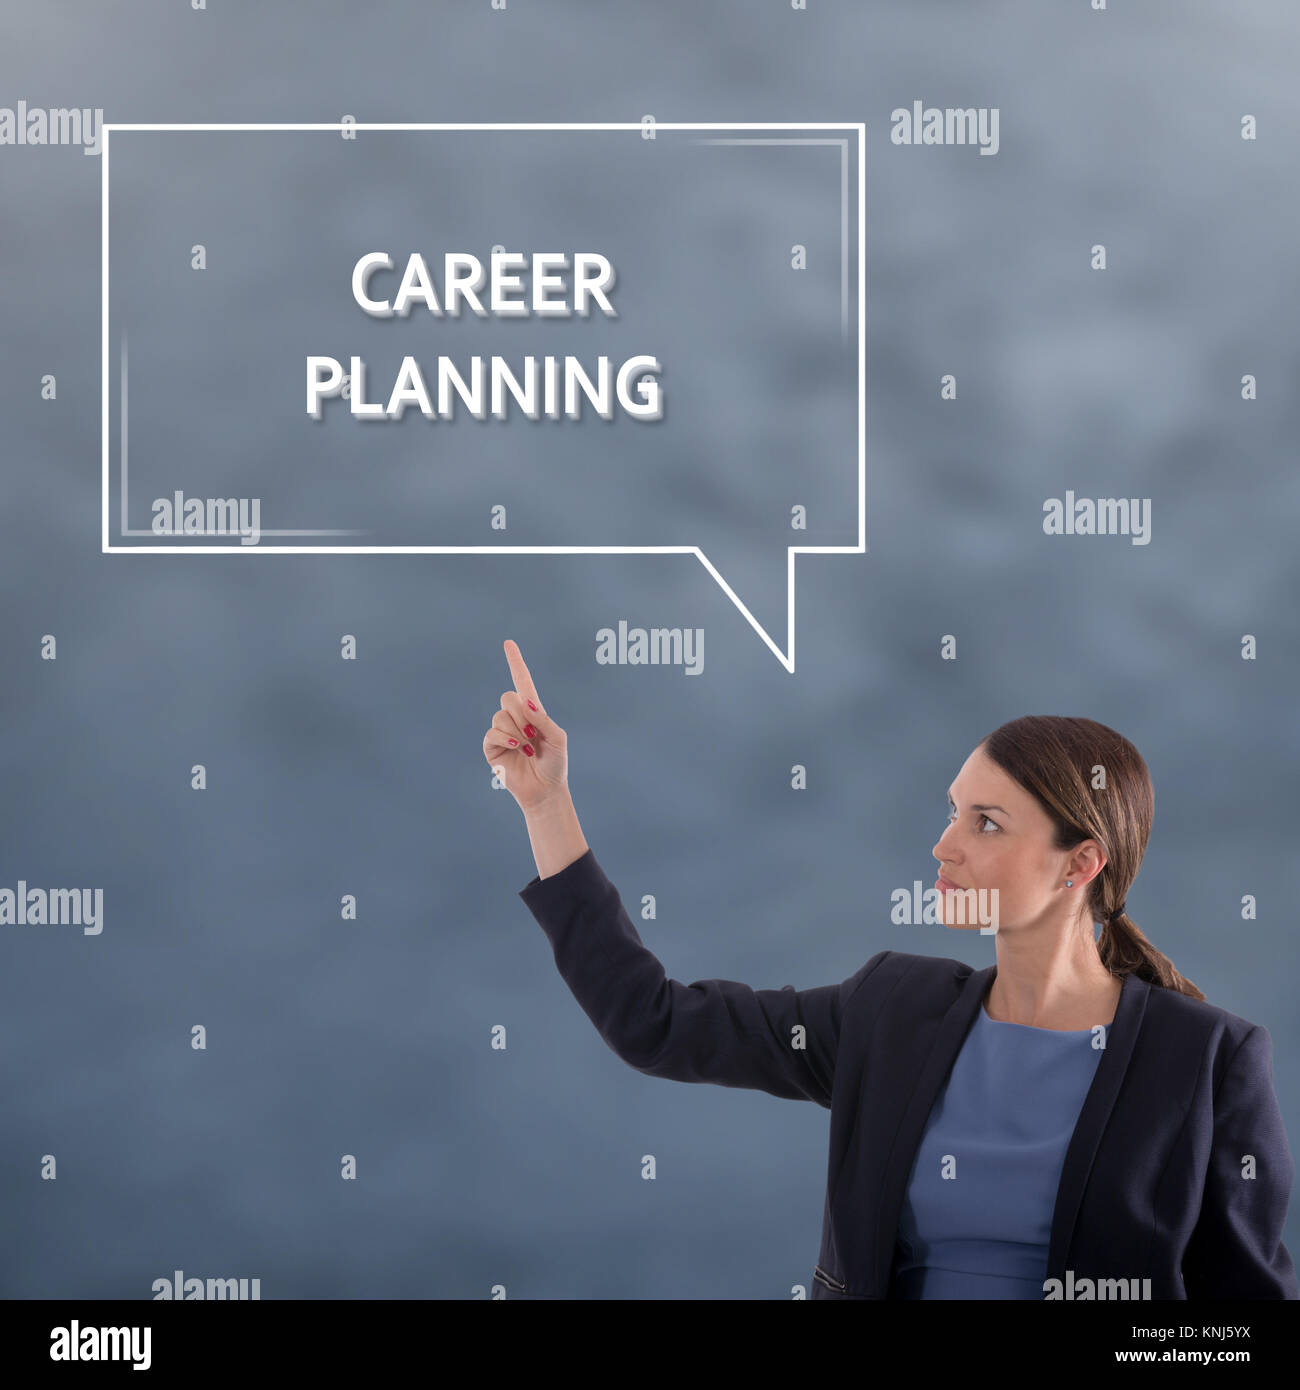 CAREER PLANNING Business Concept. Business Woman Graphic Concept - Stock Image